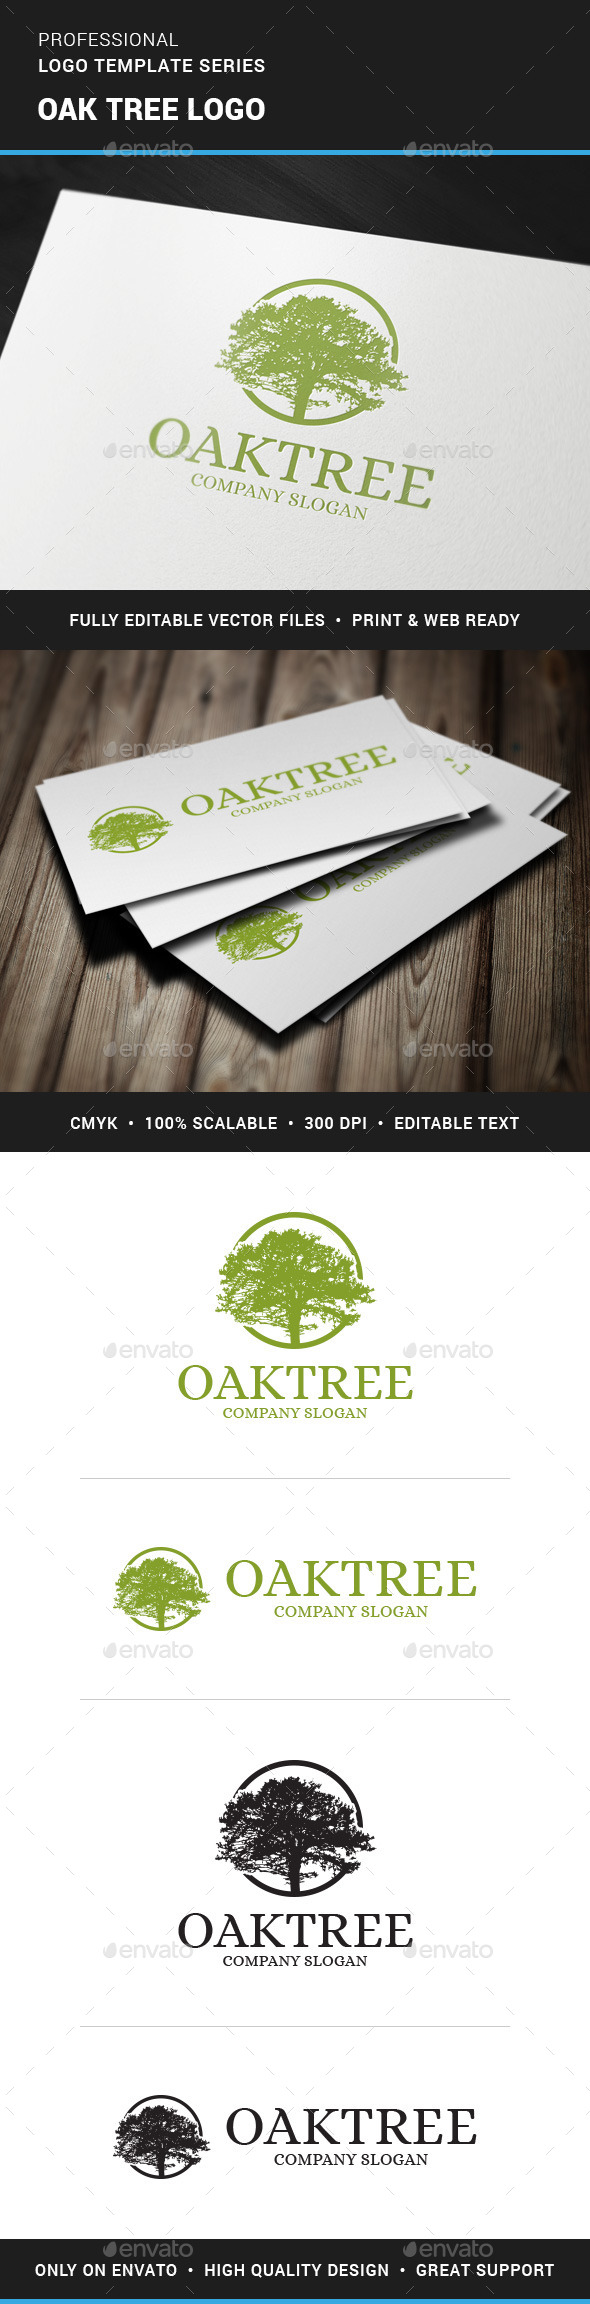 GraphicRiver Oak Tree Logo Template 11367141